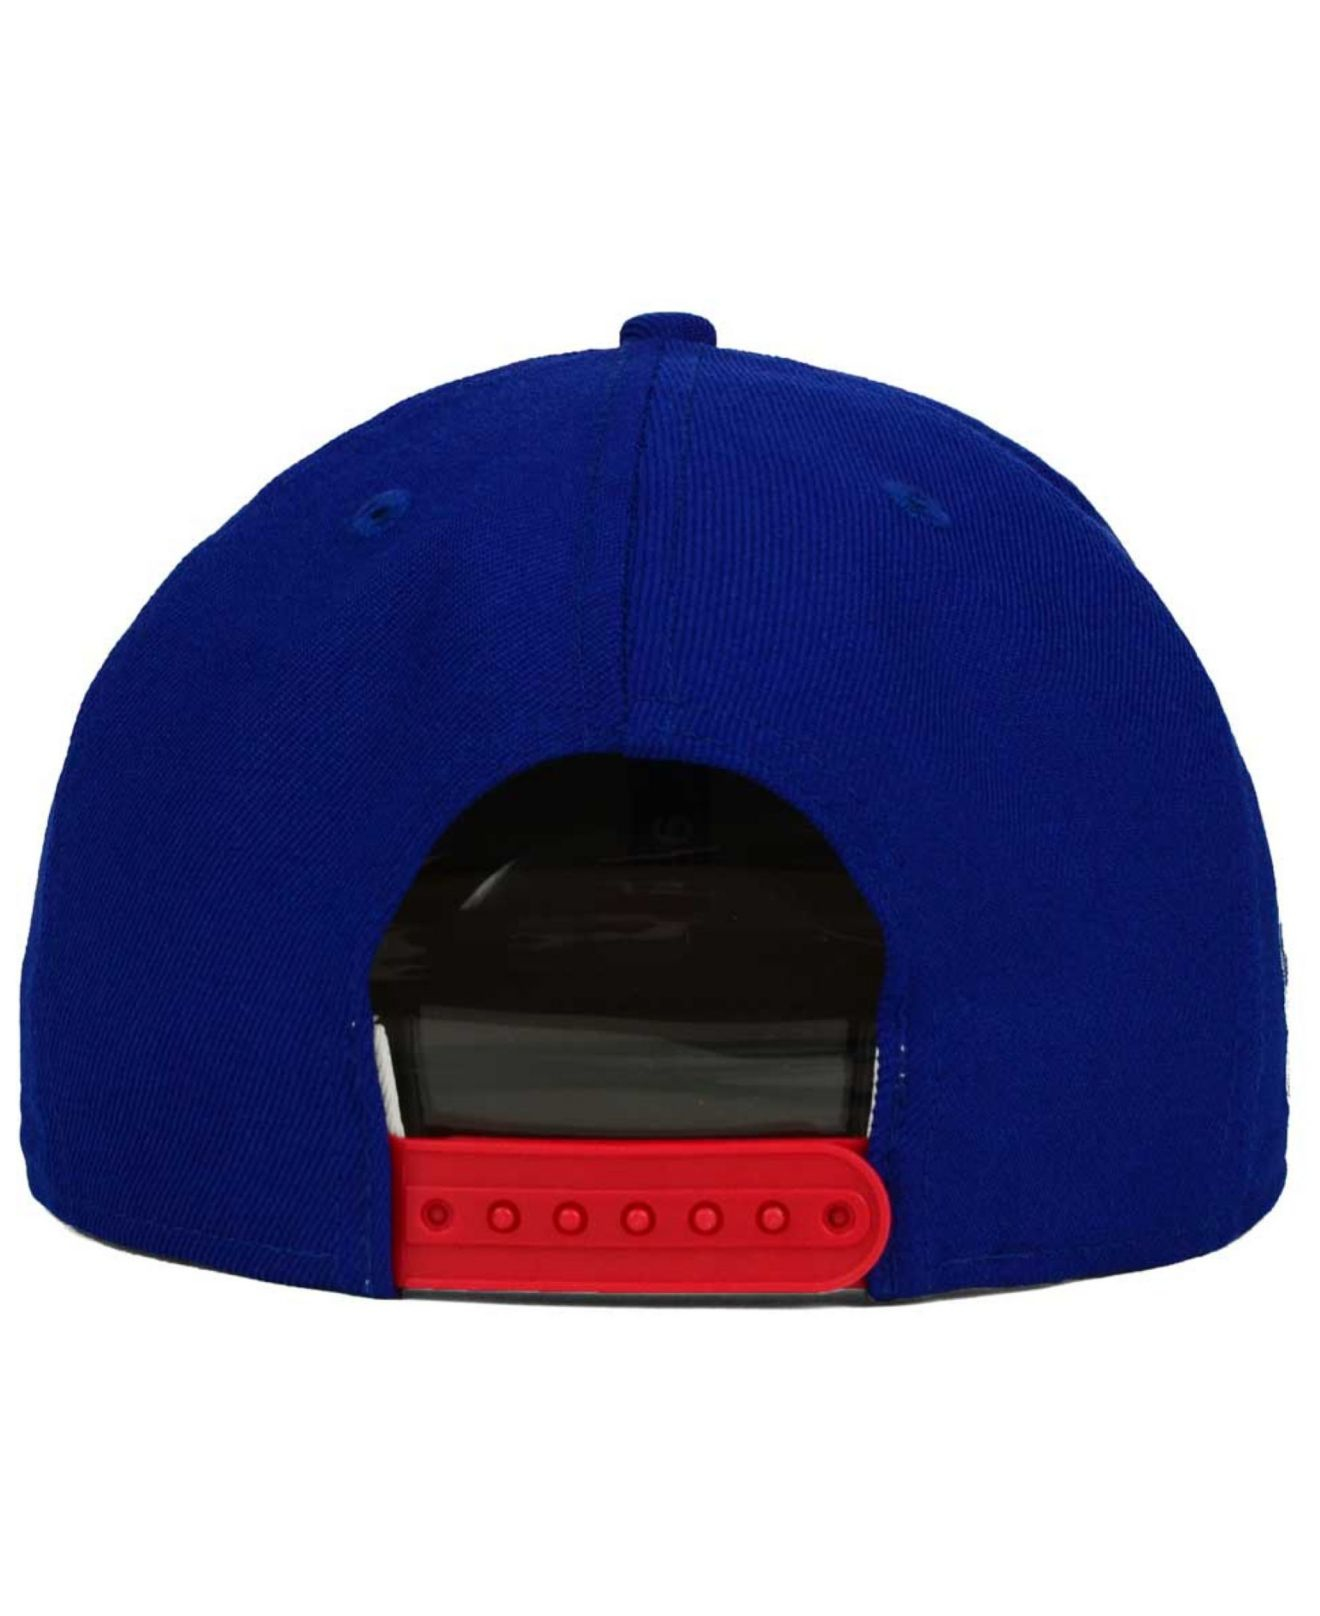 size 40 0f40c 9626a Lyst - KTZ Toronto Blue Jays 2 Tone Link Cooperstown 9fifty Snapback ...